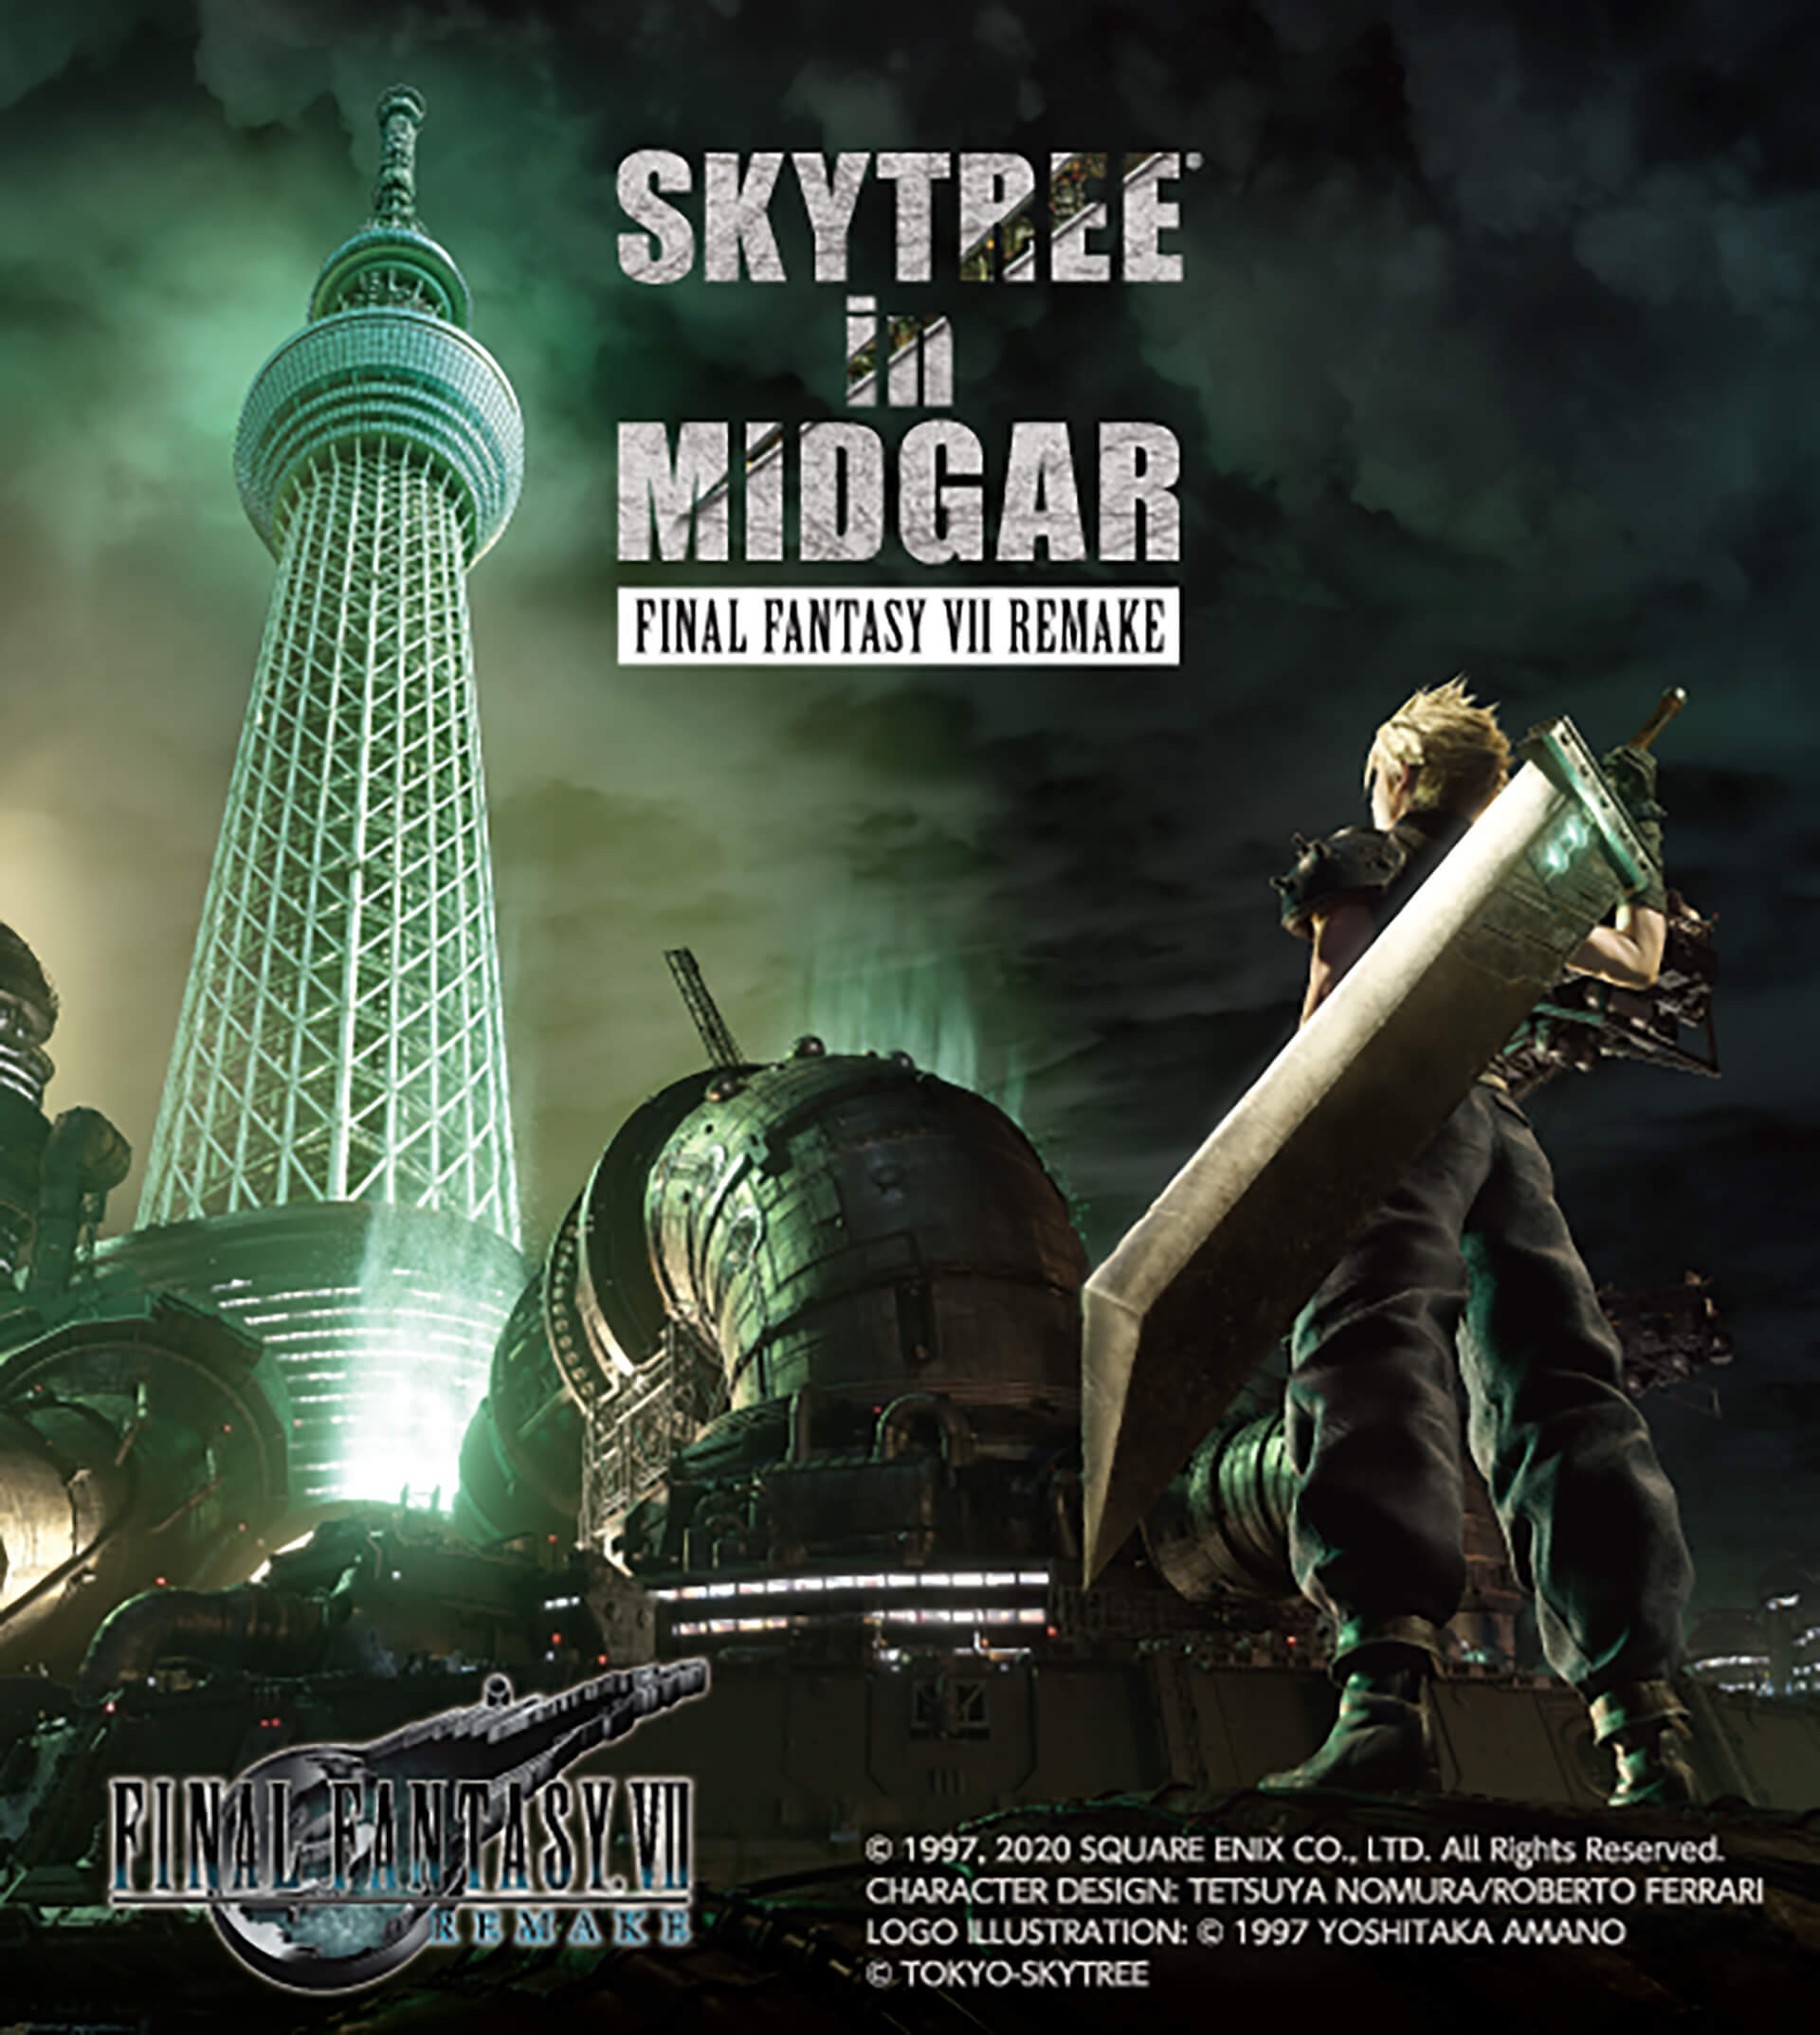 SKYTREE(R) in MIDGAR FINAL FANTASY VII REMAKE』オリジナル映像作品